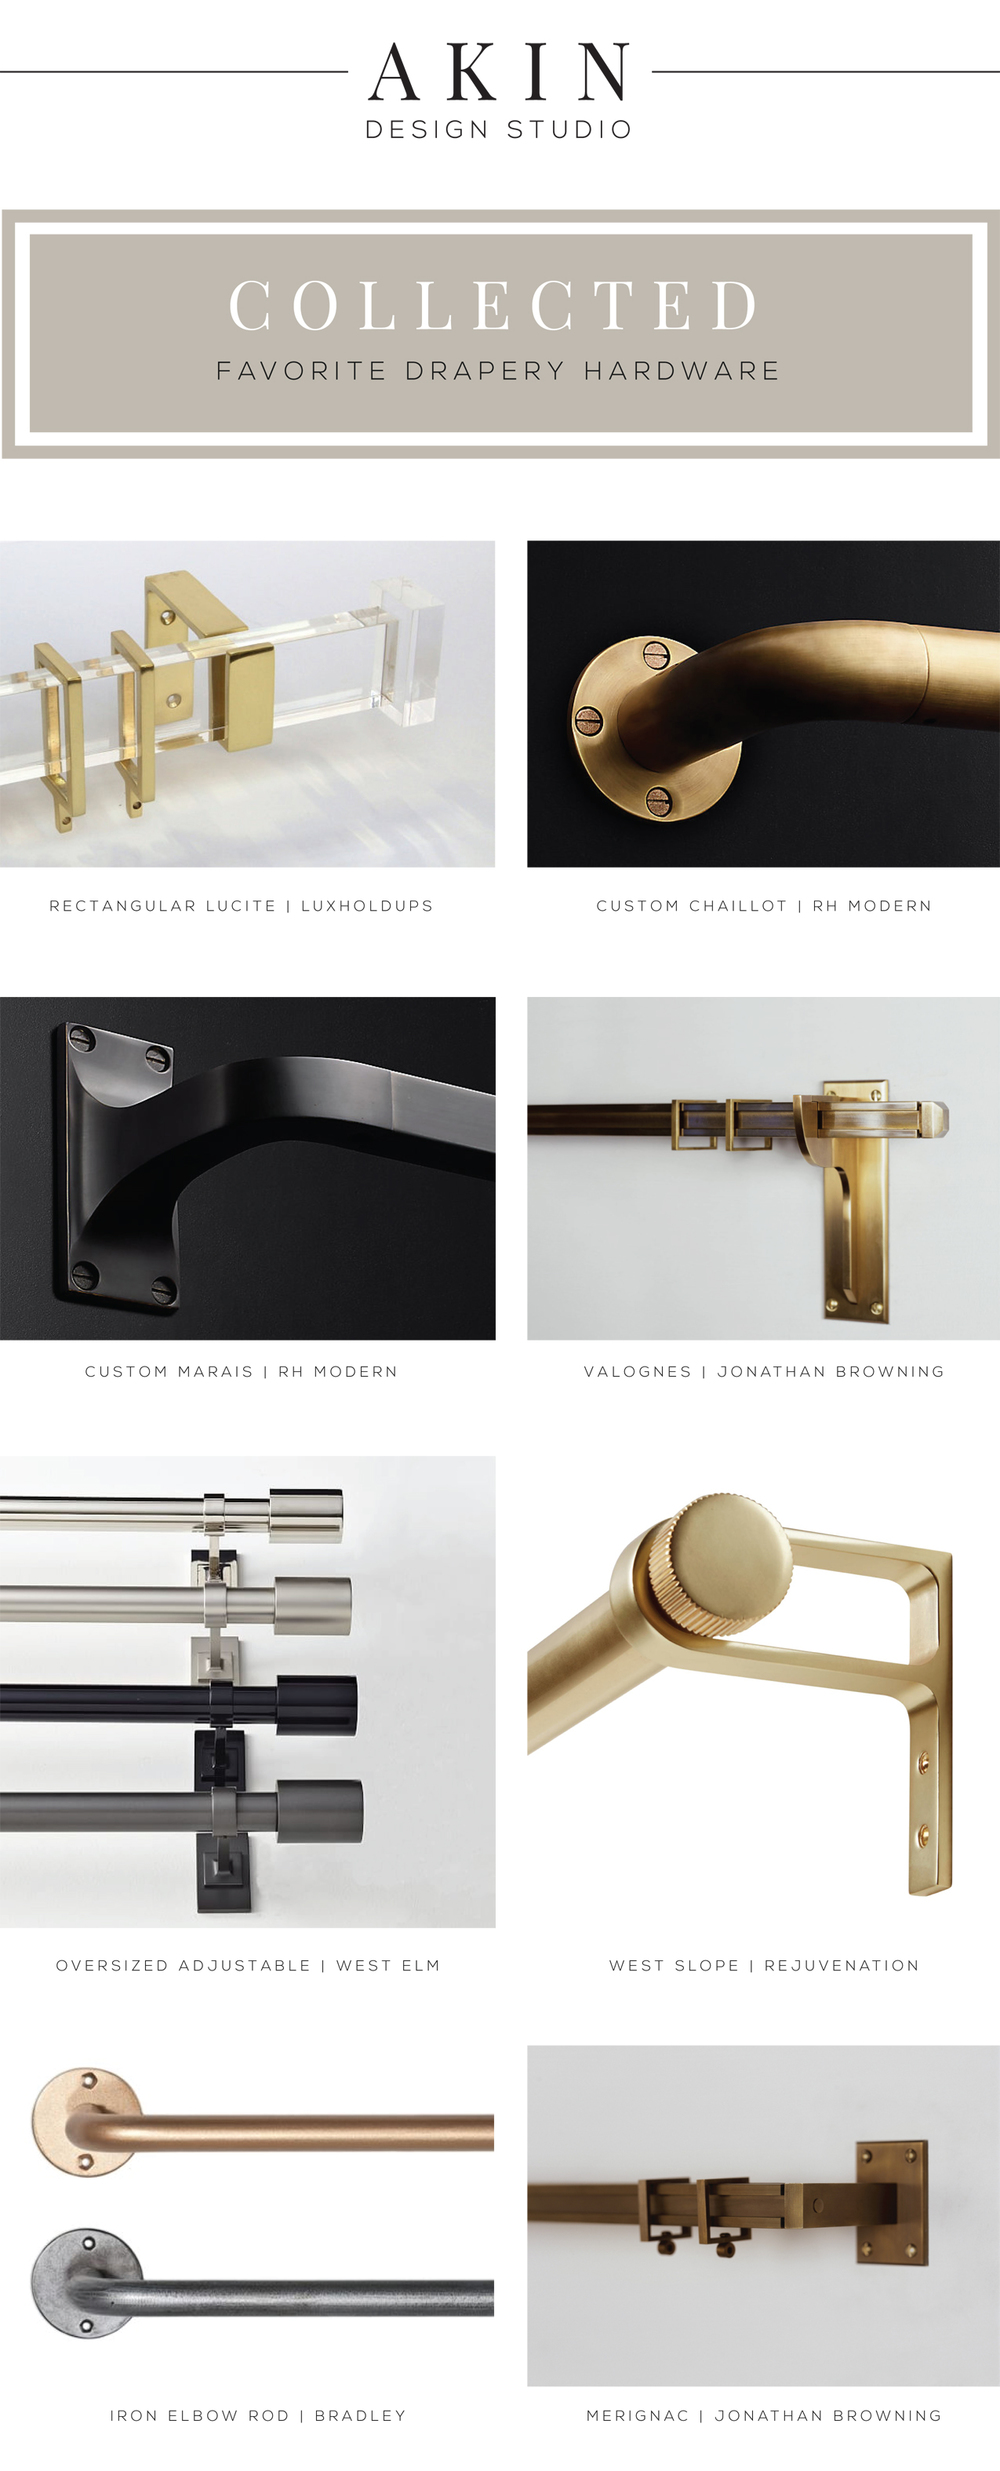 Akin Design Studio's Favorite Drapery Hardware